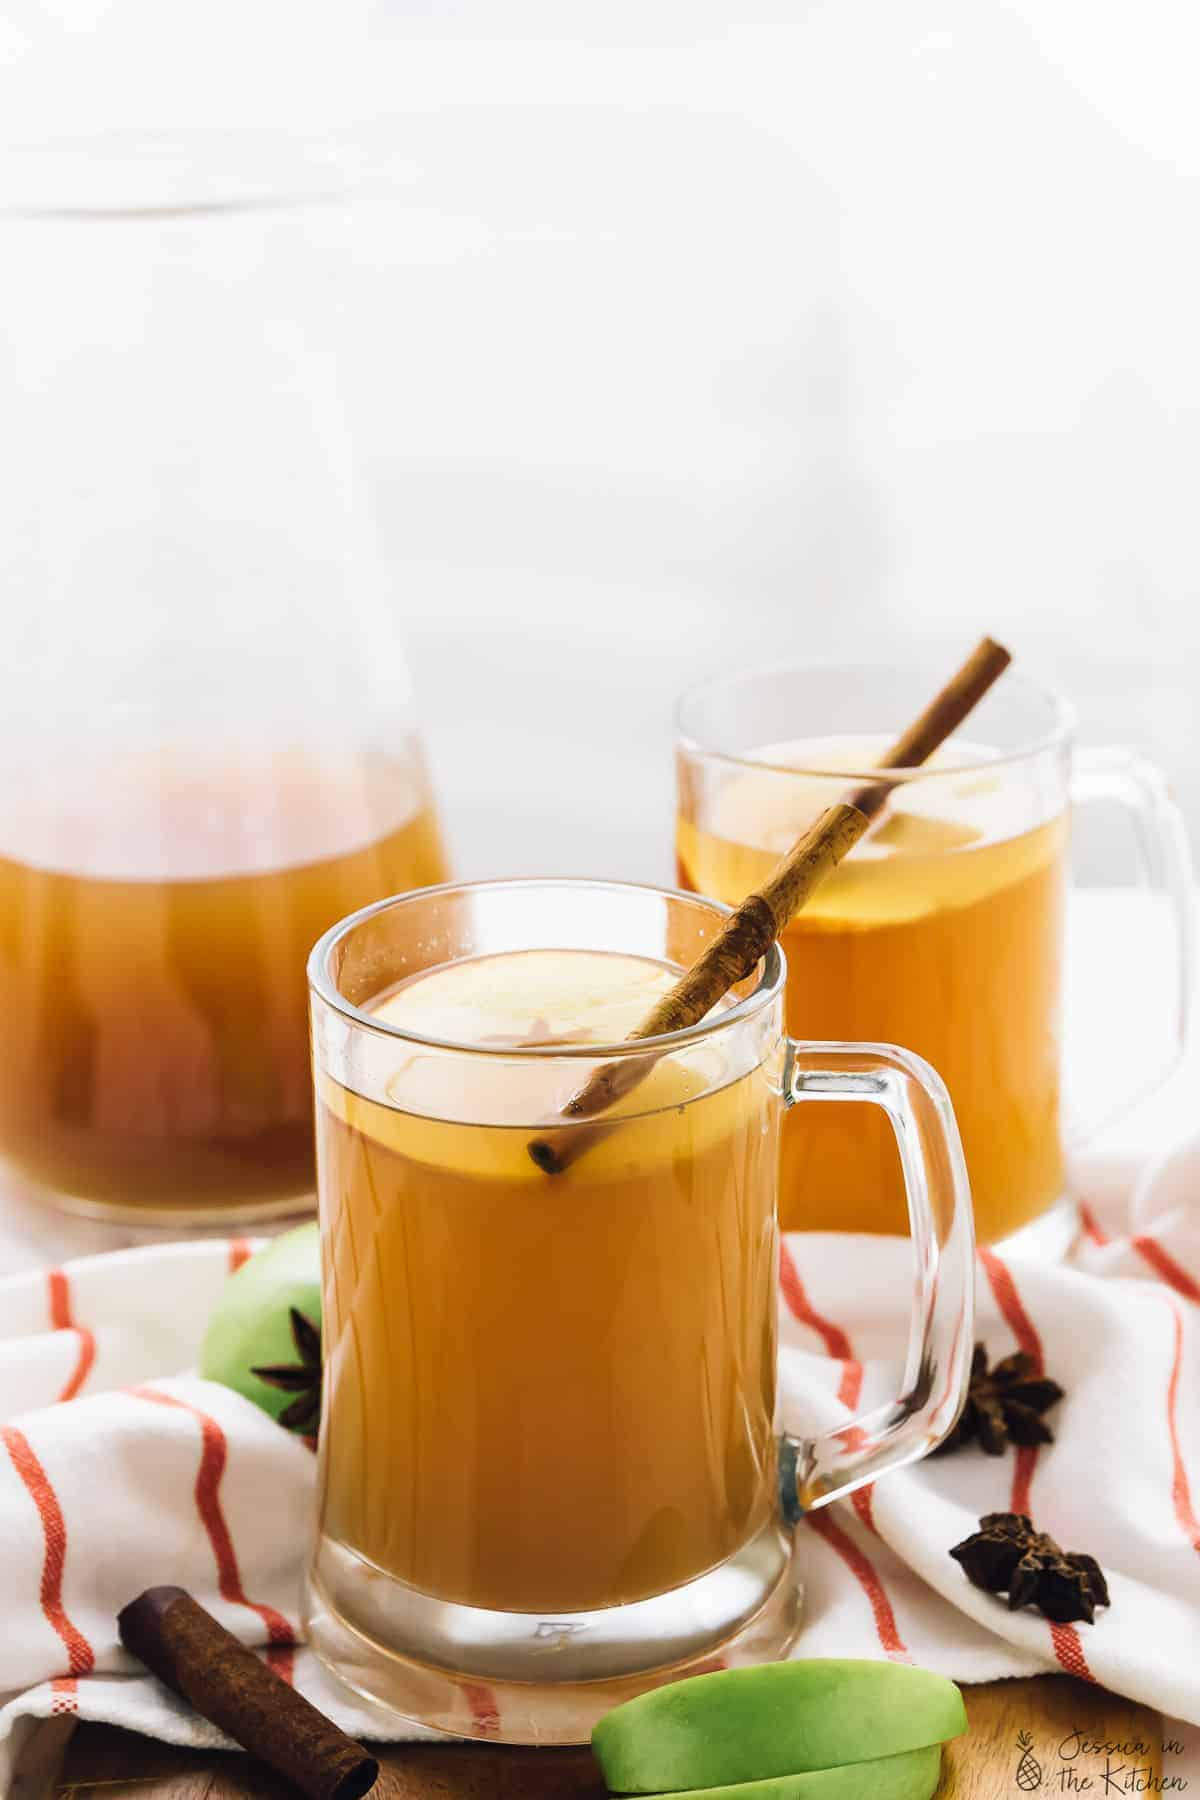 Two glass mugs of warm spiced apple cider with a cinnamon stick in one mug.